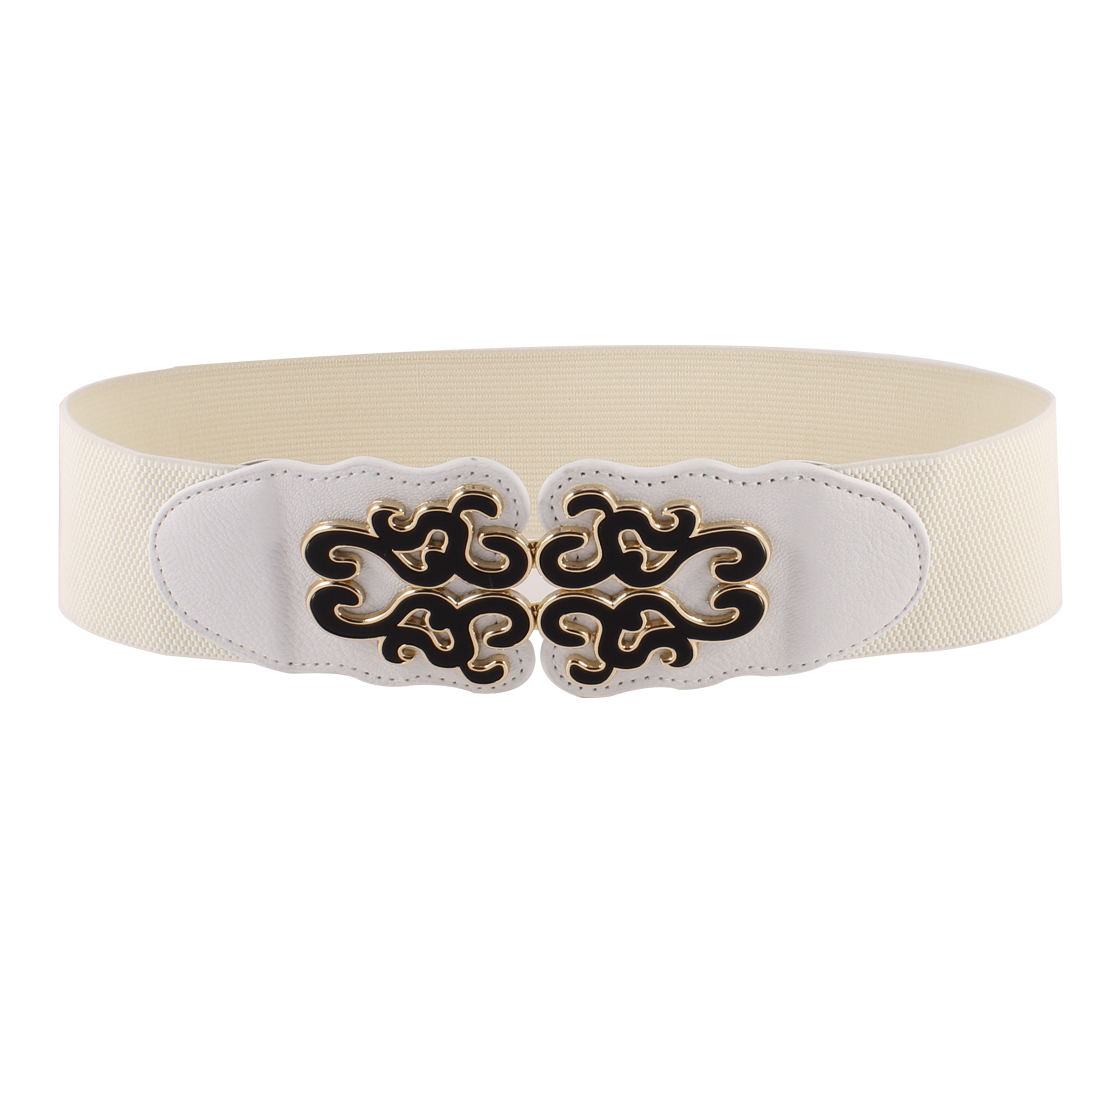 Women Faux Leather Ethnic Floral Ornament Interlock Buckle Stretchy Belt White